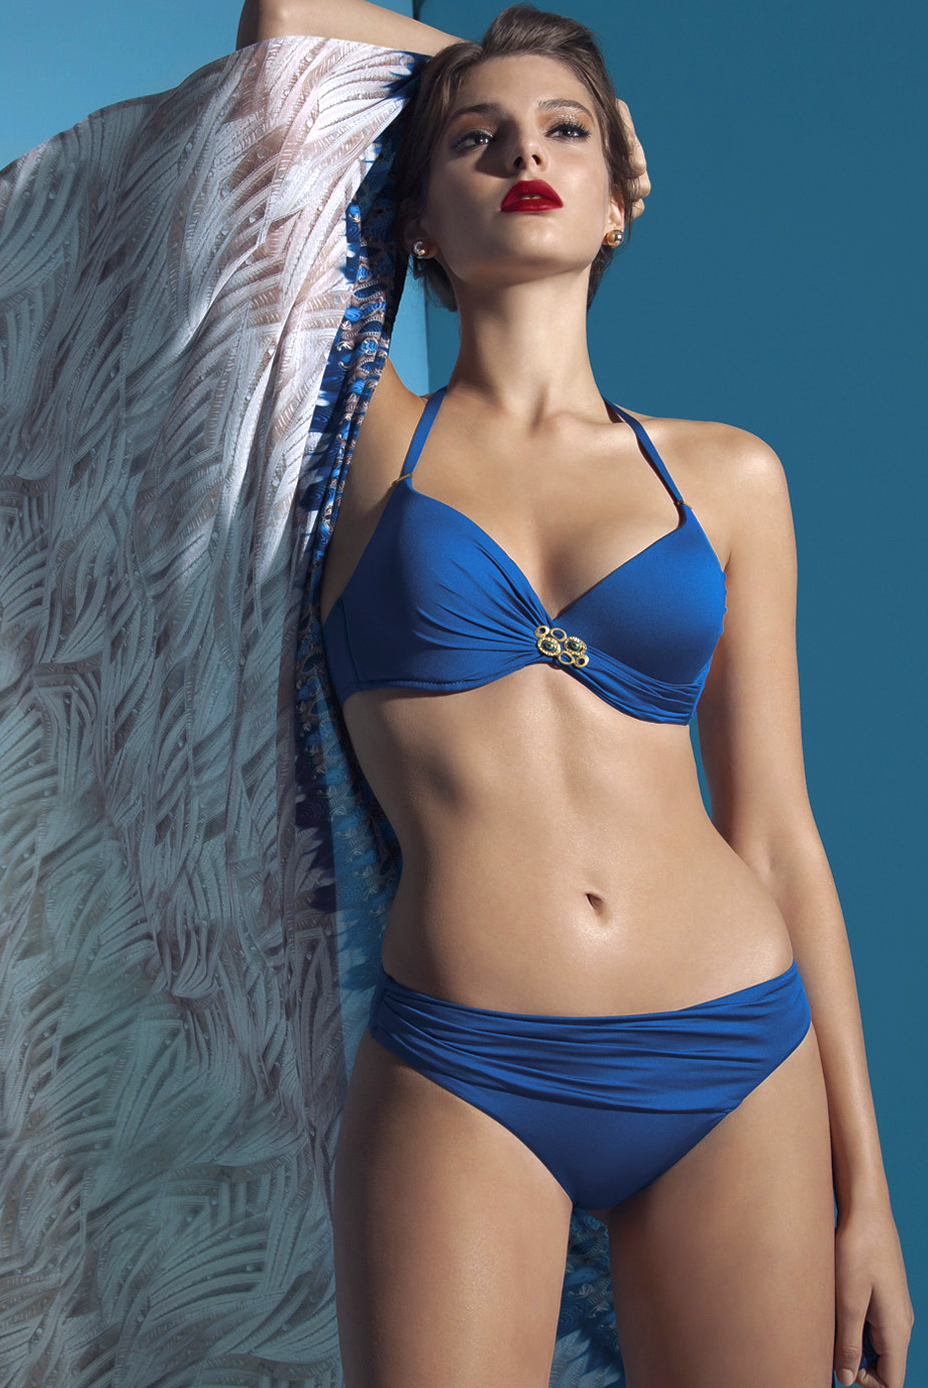 MAGISTRAL - SwimwearInternational expansion by switching from own platform to StyleHub